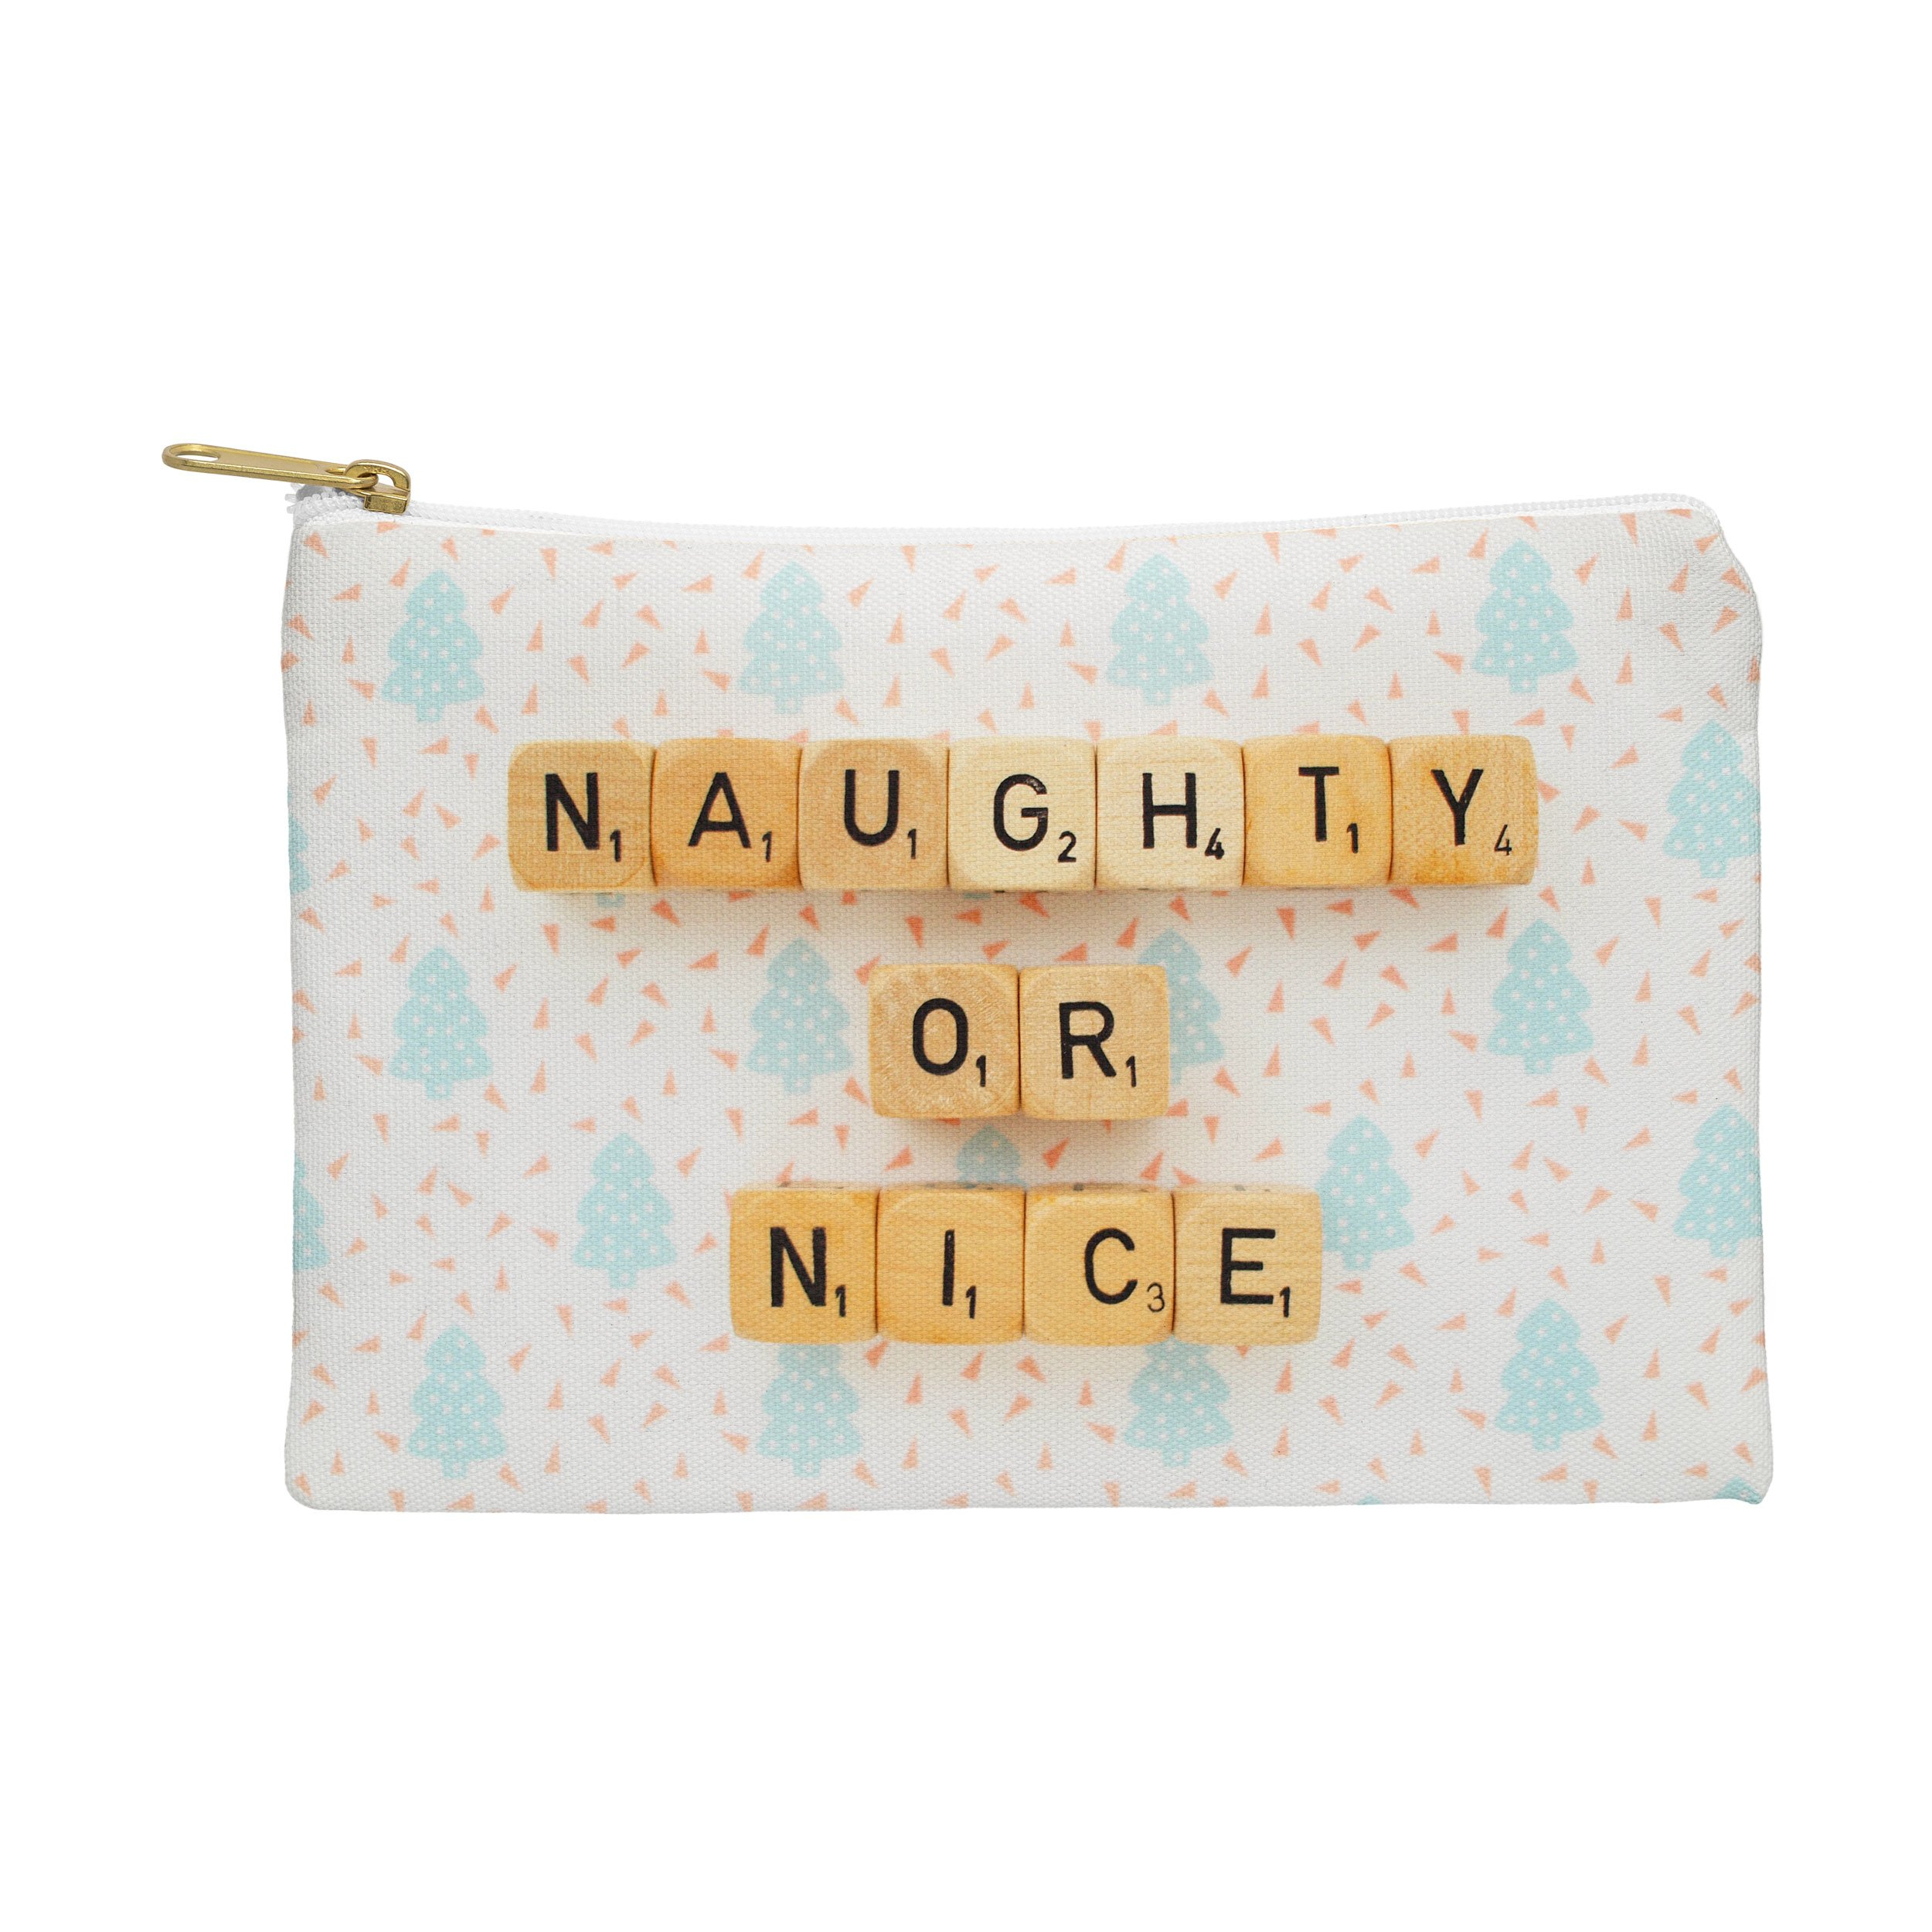 Image of Happee Monkee Naughty or Nice Scrabble Pouch